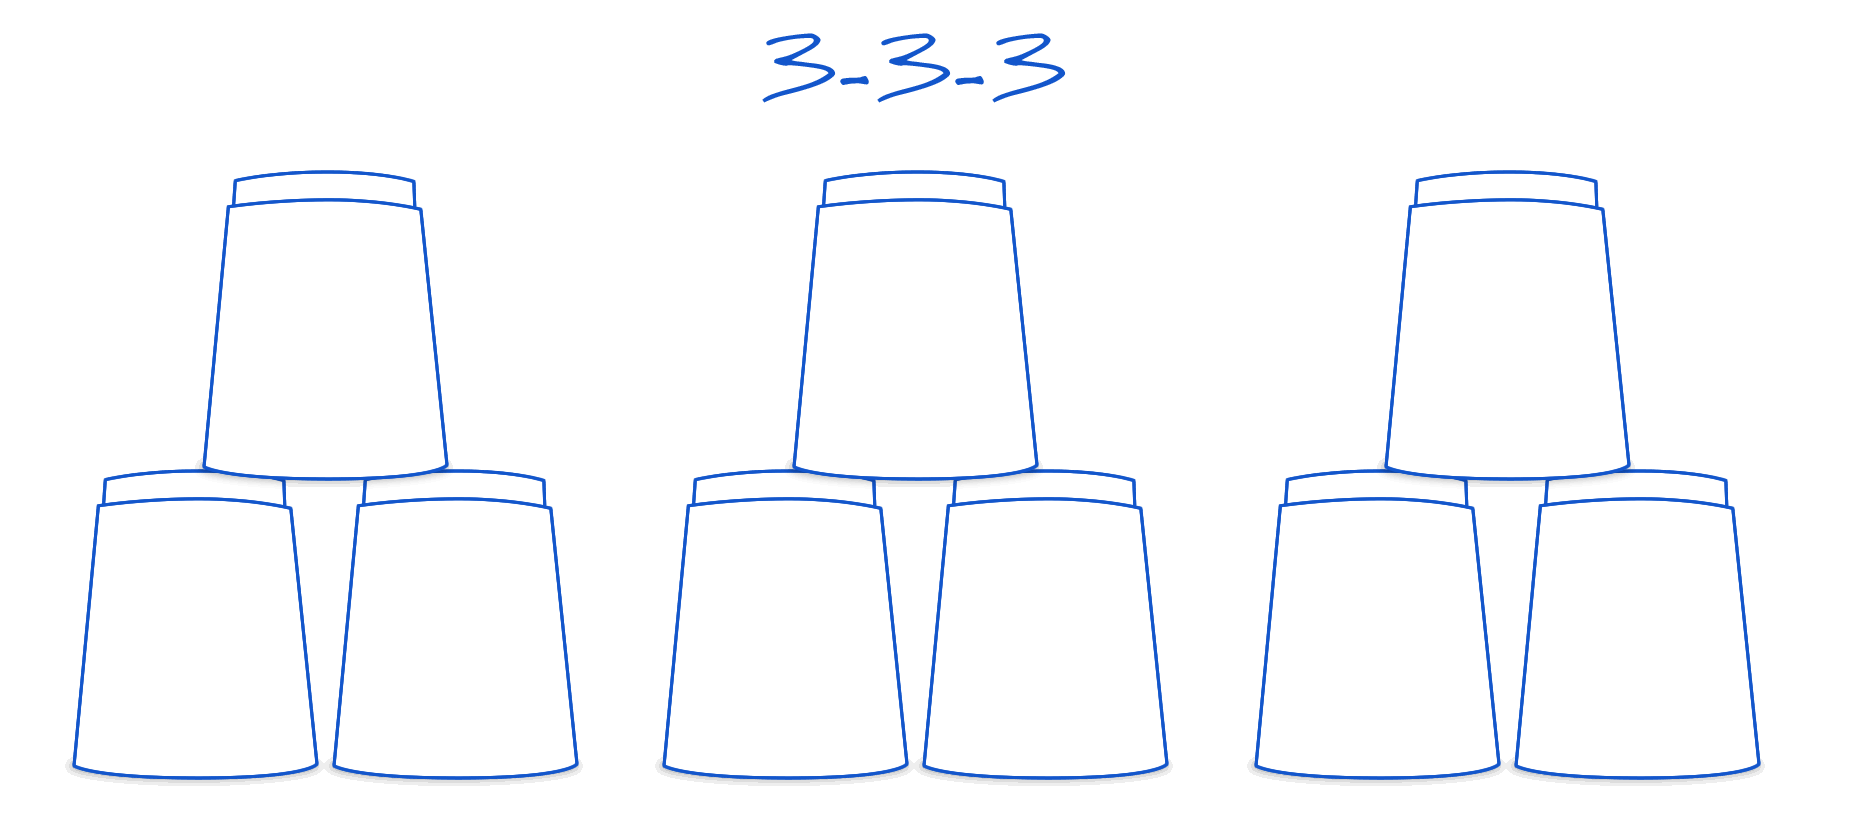 3-3-3 formation